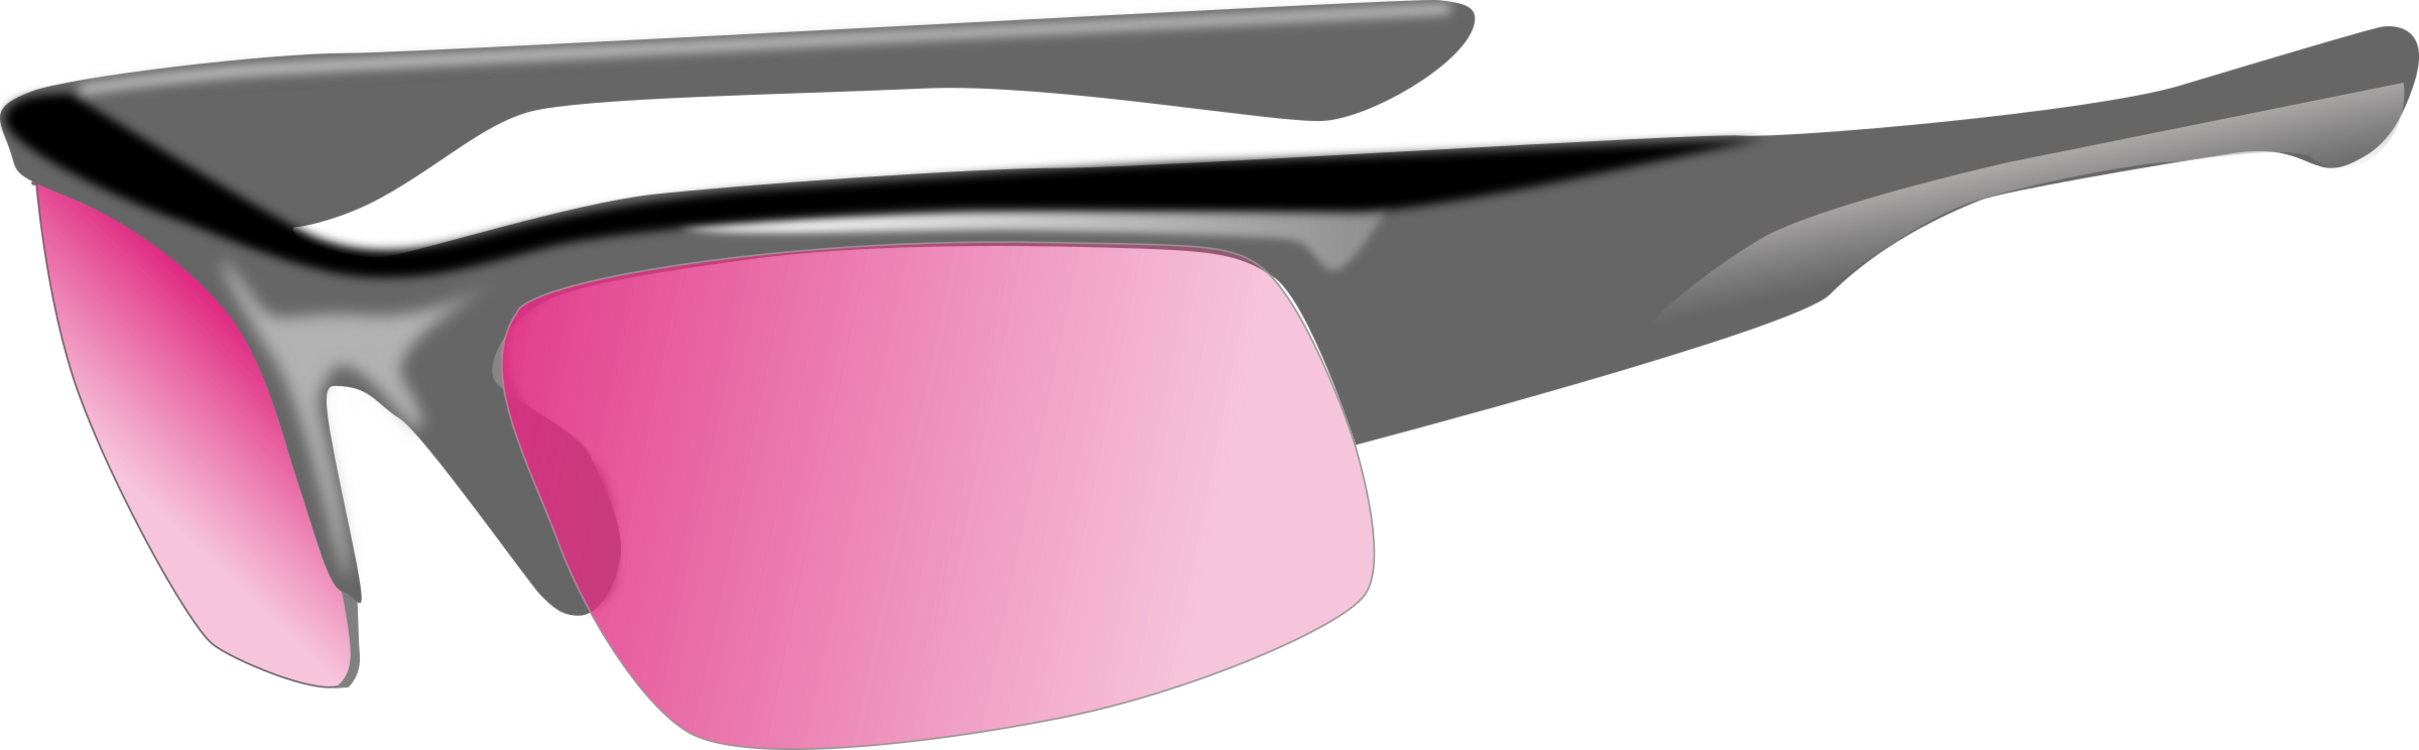 Pink,Sunglasses,Vision Care